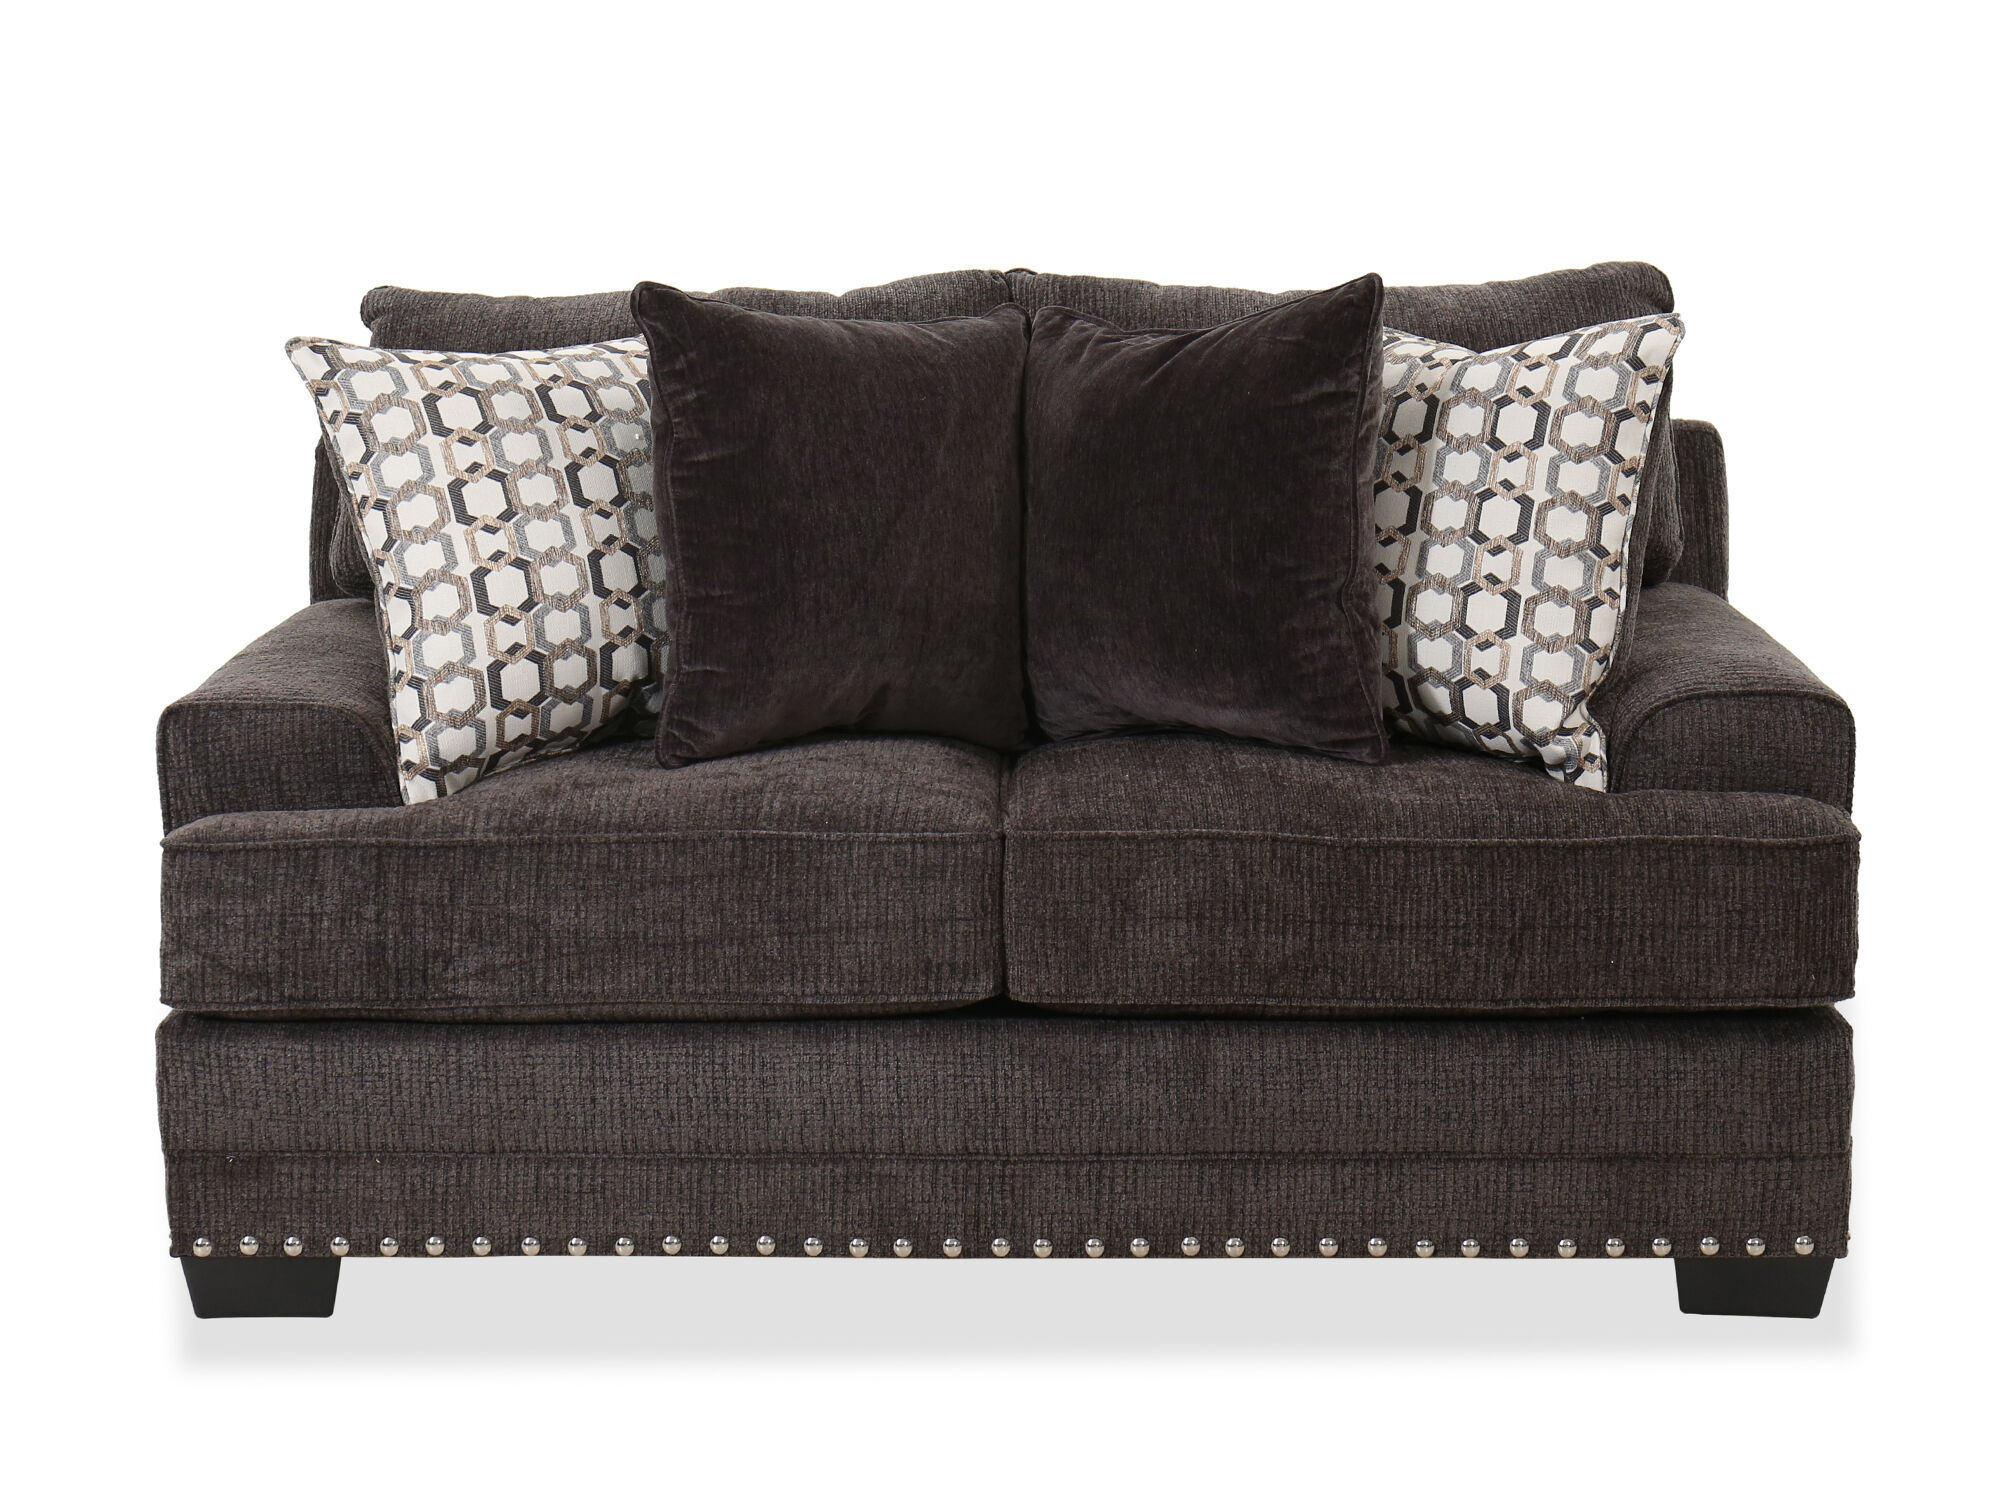 Nailhead-Accented Contemporary Loveseat in Charcoal | Mathis ...